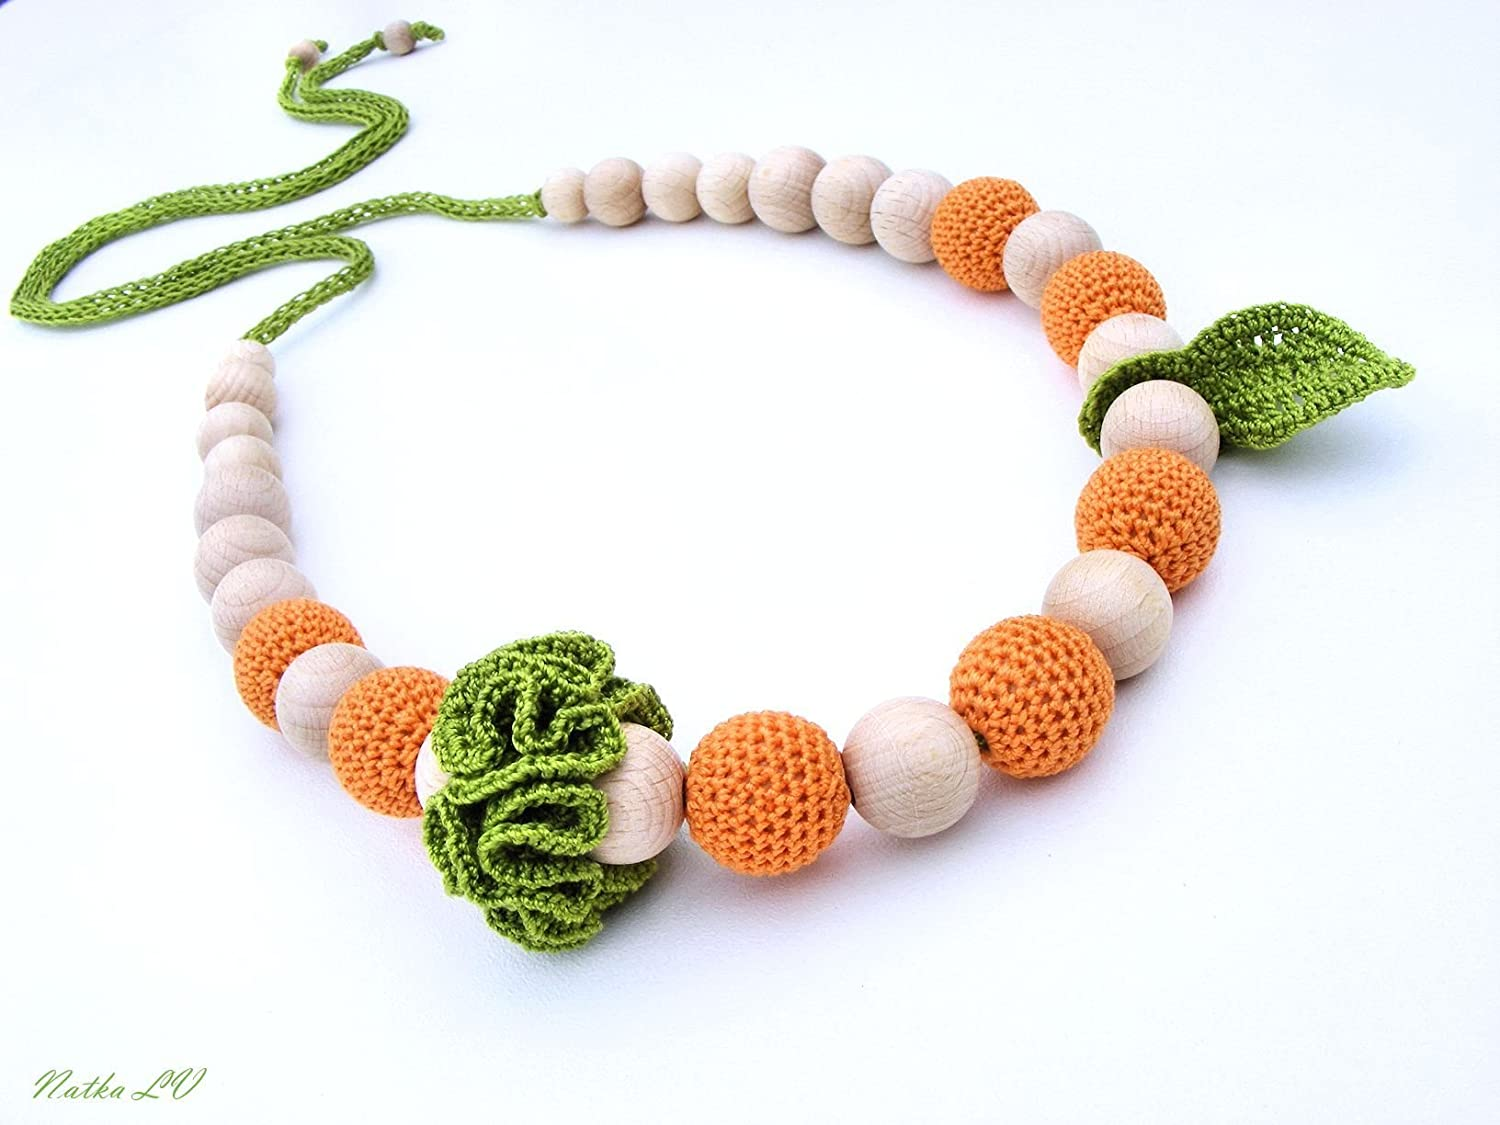 Orange nursing necklace, teething necklace, breastfeeding necklace, natural, wooden beads, cotton, green orange, unisex teething toy, fruit necklace, new baby gift, baby necklace